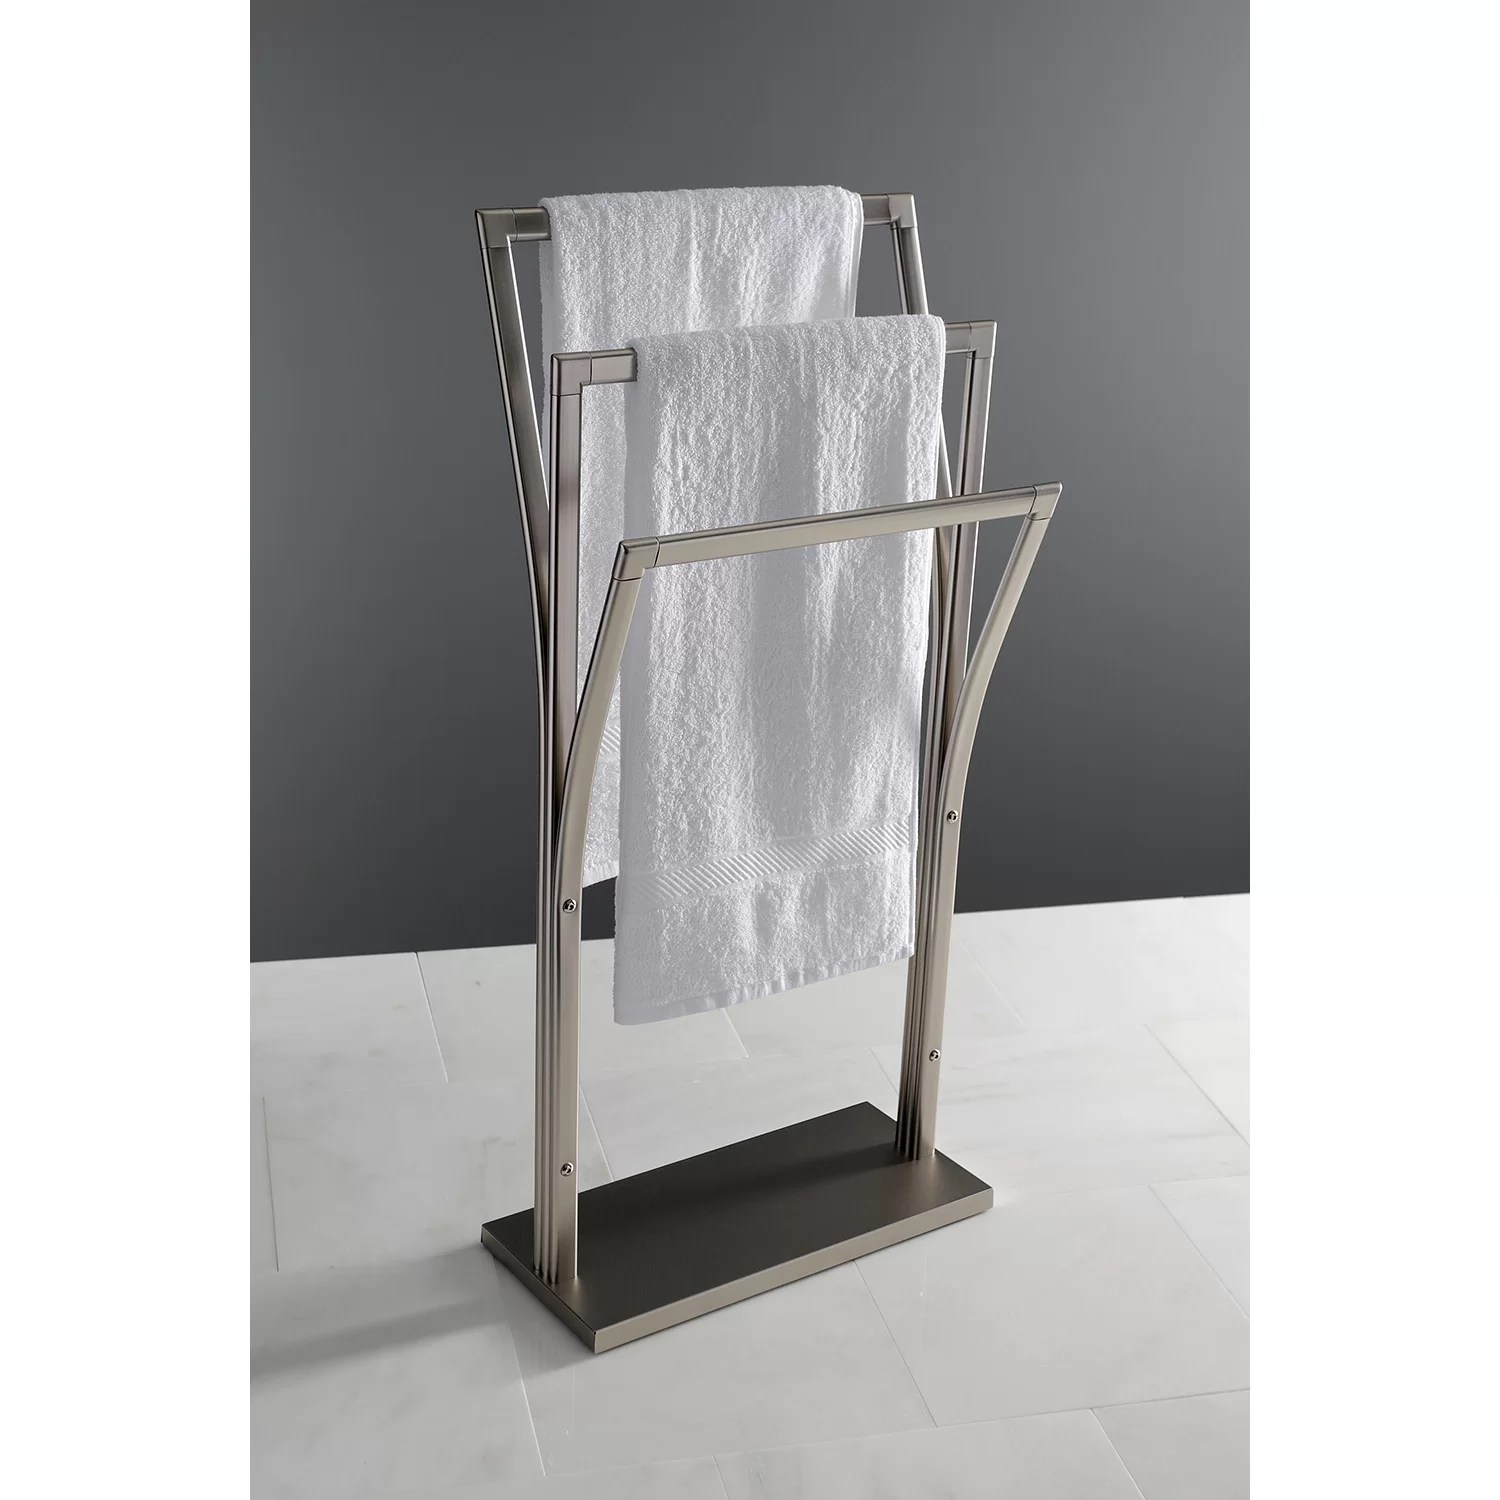 Kingston Brass Edenscape Pedestal Y Style Free Standing Towel Stand Reviews